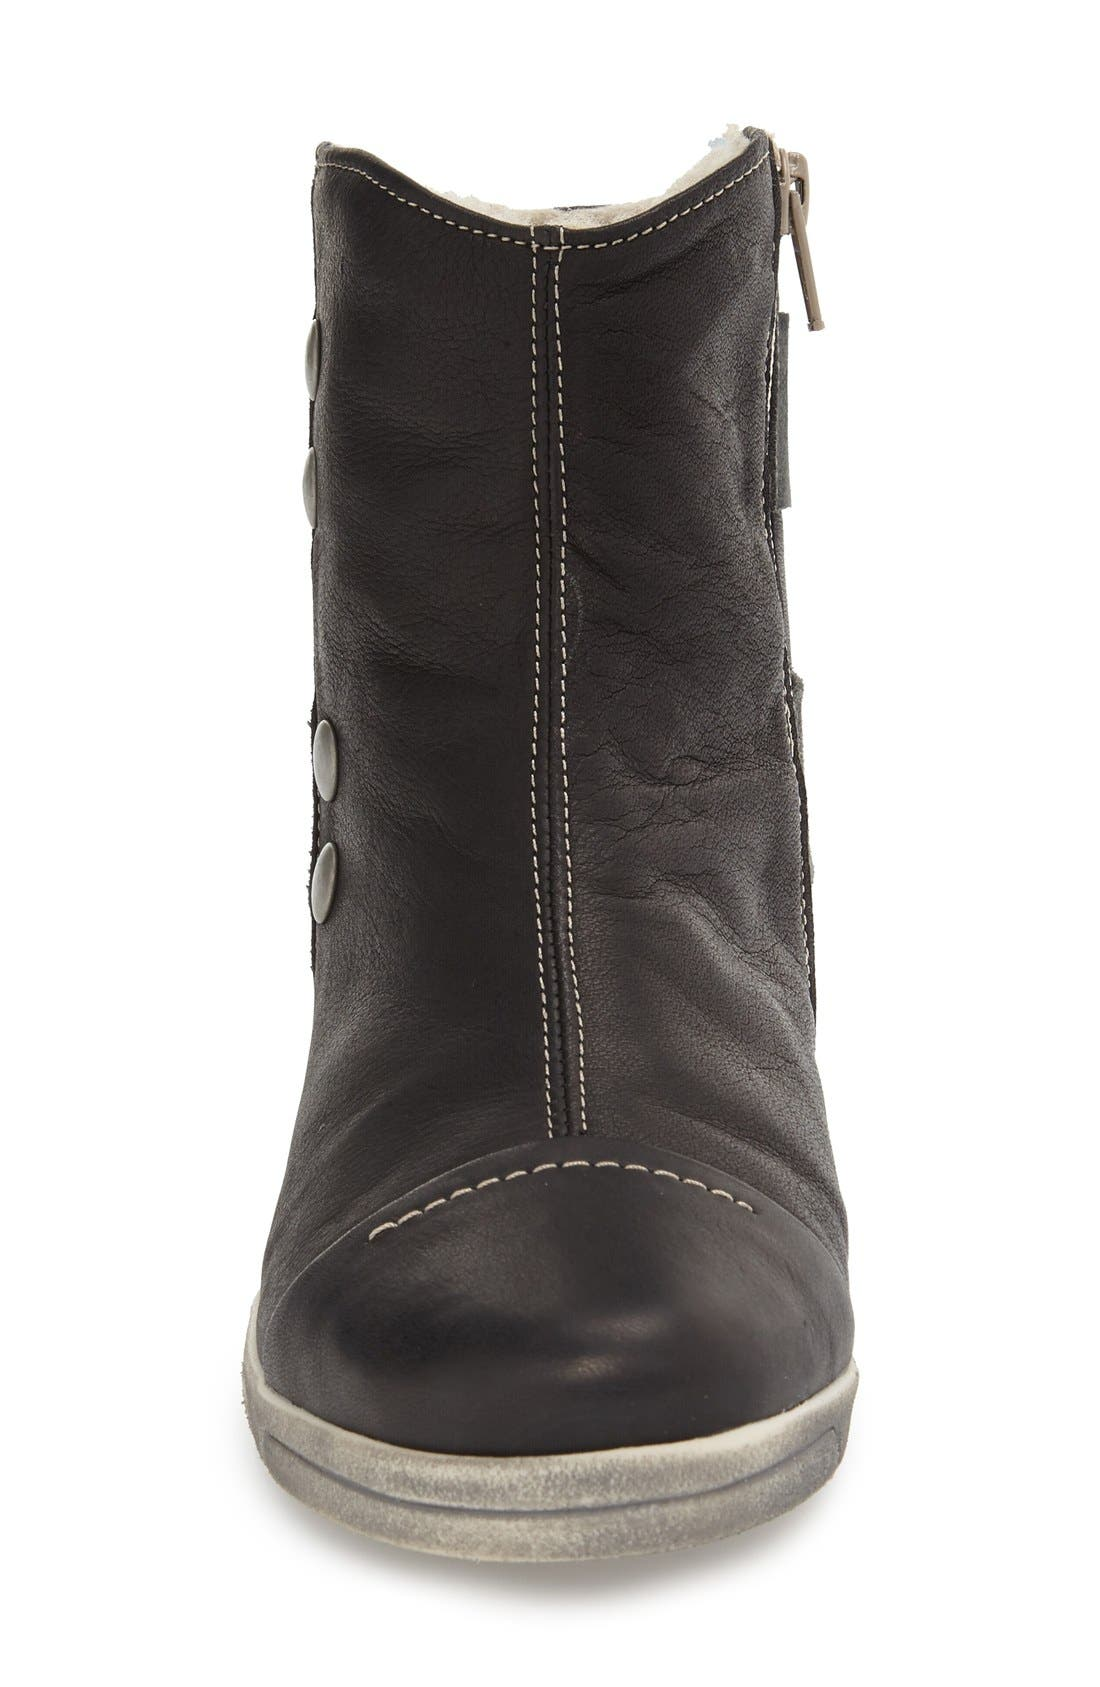 Aline Fantasy Shearling Lined Boot,                             Alternate thumbnail 3, color,                             BLACK LEATHER